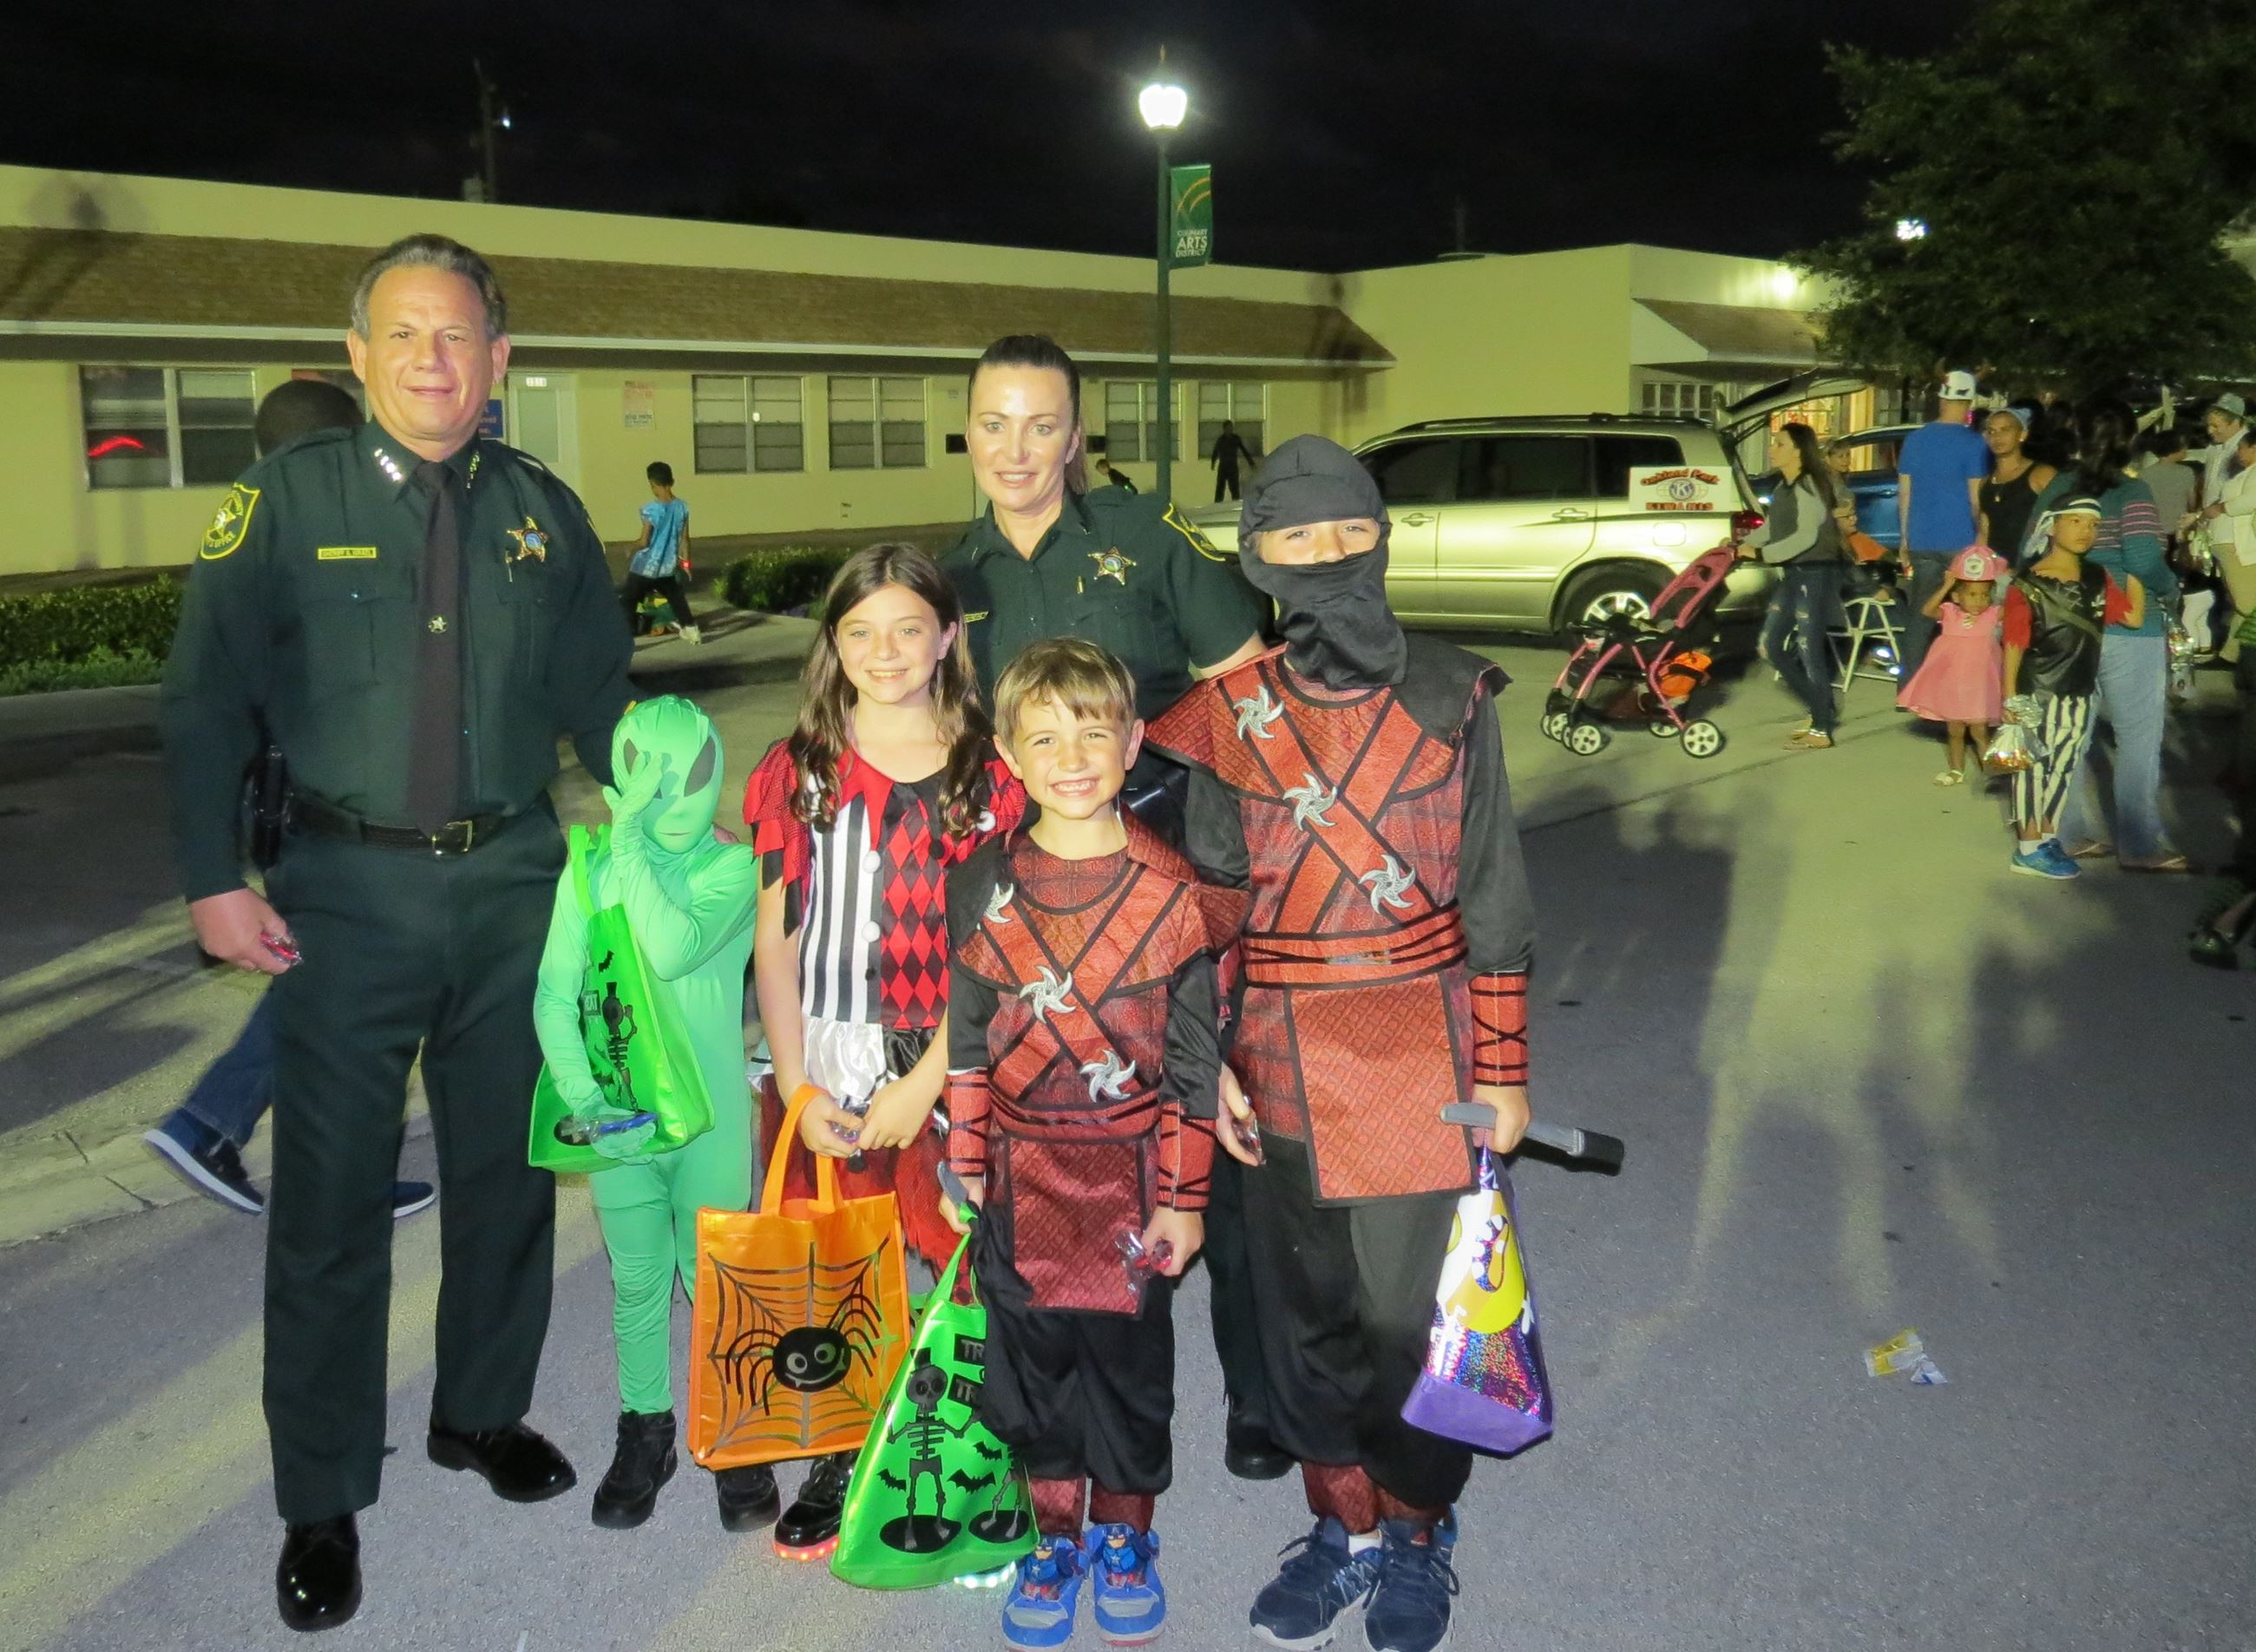 Police / Broward Sheriff's Office (BSO) | Oakland Park, FL